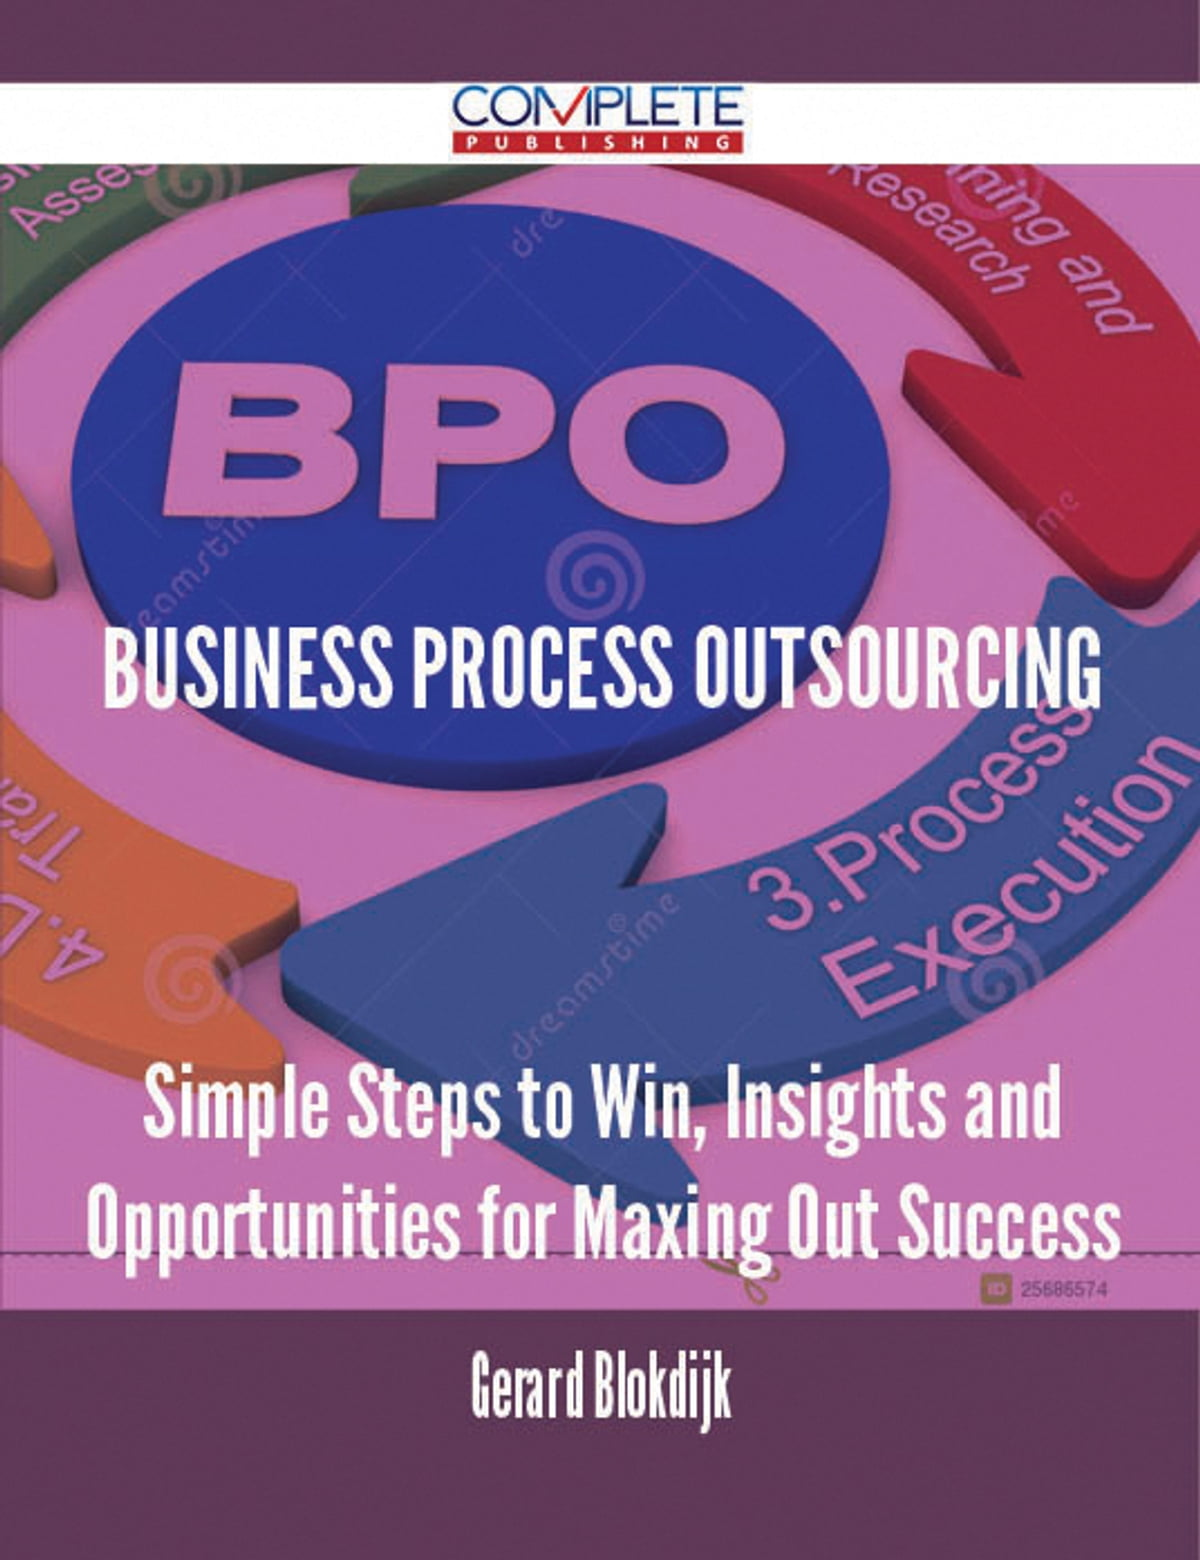 Business Process Outsourcing - Simple Steps to Win, Insights and  Opportunities for Maxing Out Success ebook by Gerard Blokdijk - Rakuten Kobo